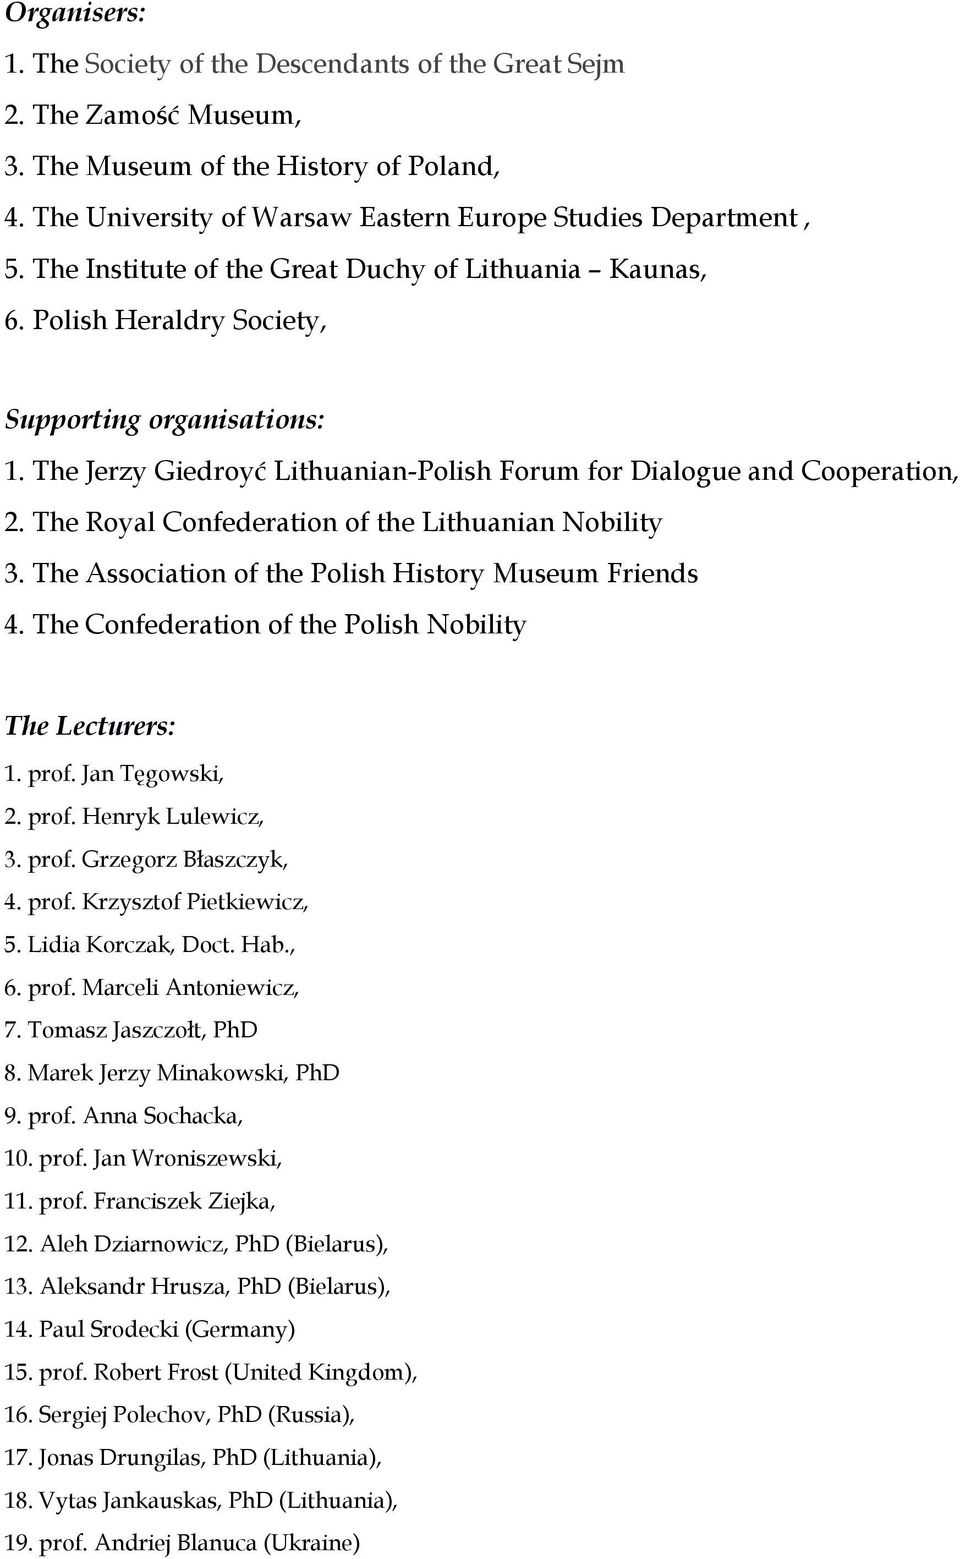 The Royal Confederation of the Lithuanian Nobility 3. The Association of the Polish History Museum Friends 4. The Confederation of the Polish Nobility The Lecturers: 1. prof. Jan Tęgowski, 2. prof. Henryk Lulewicz, 3.